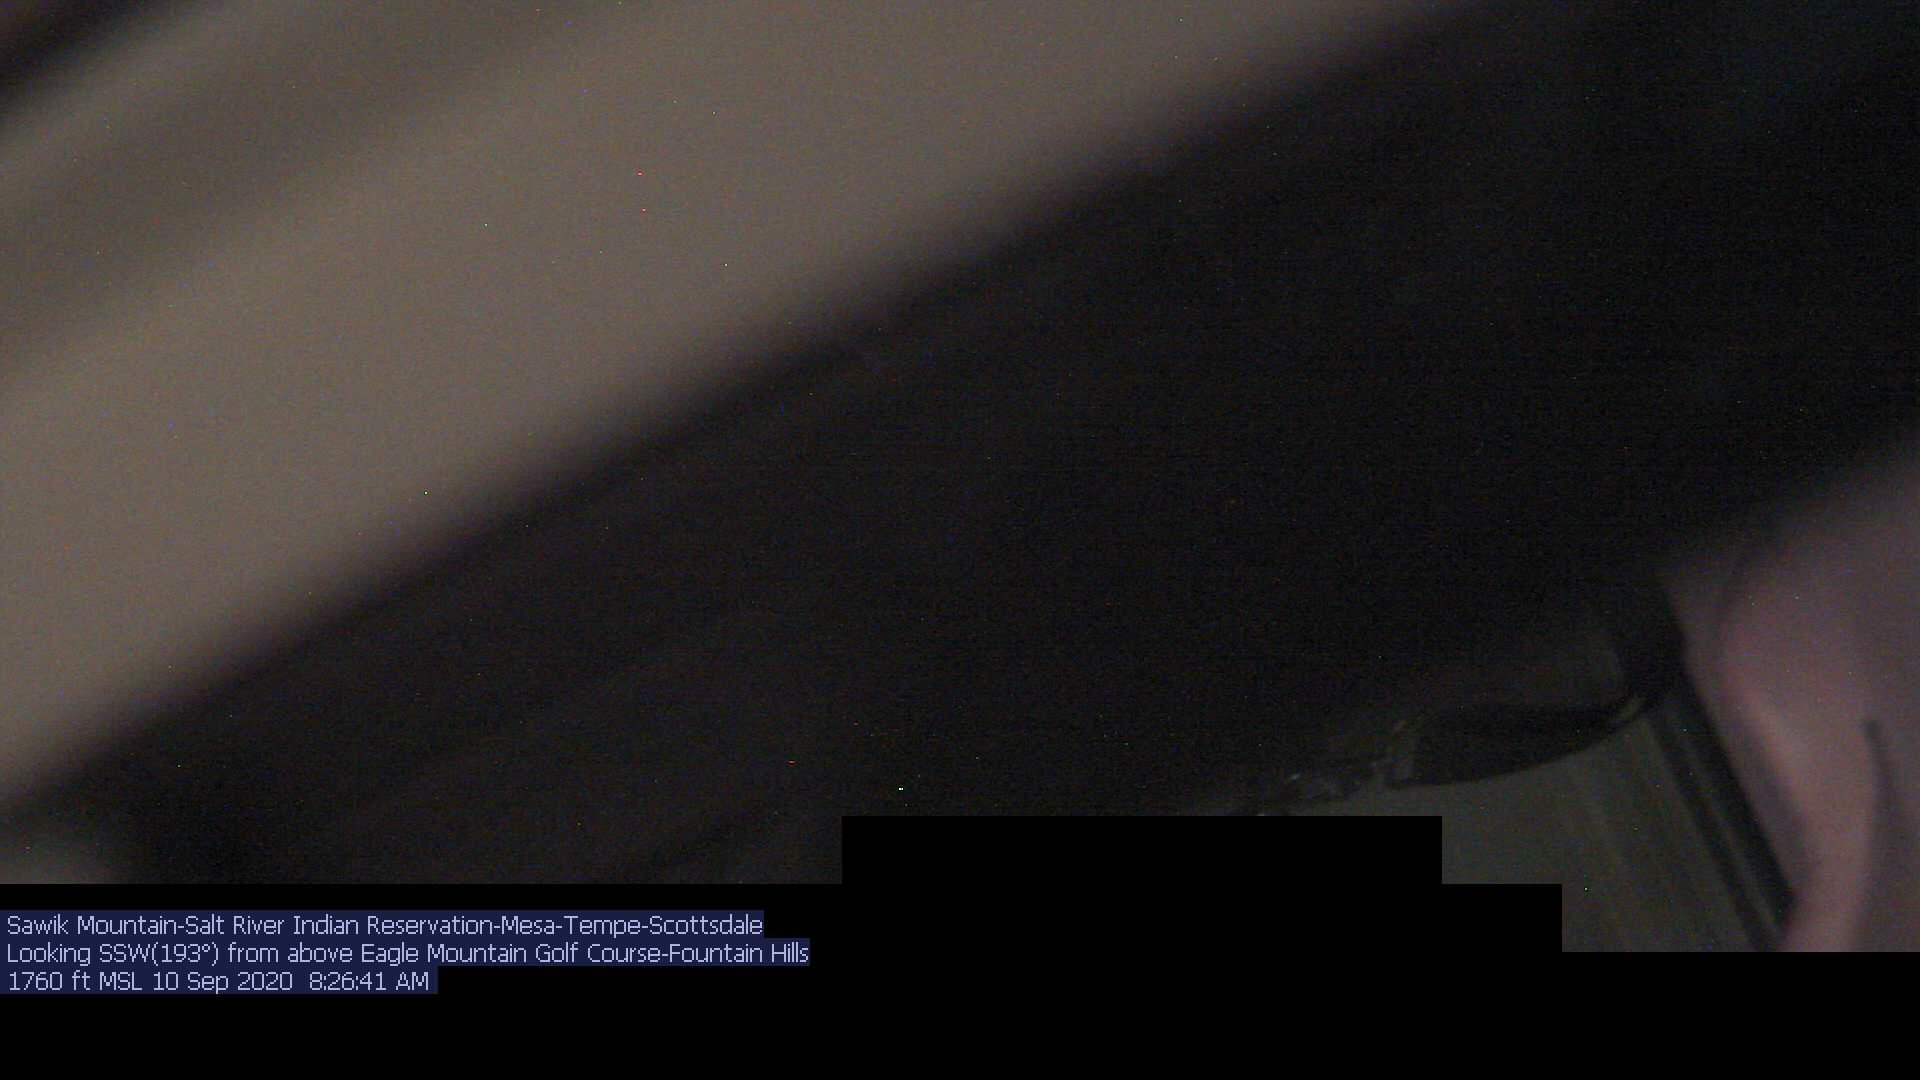 Webcam Eagle Mountain Golf Club › South: Sawik Mountain −